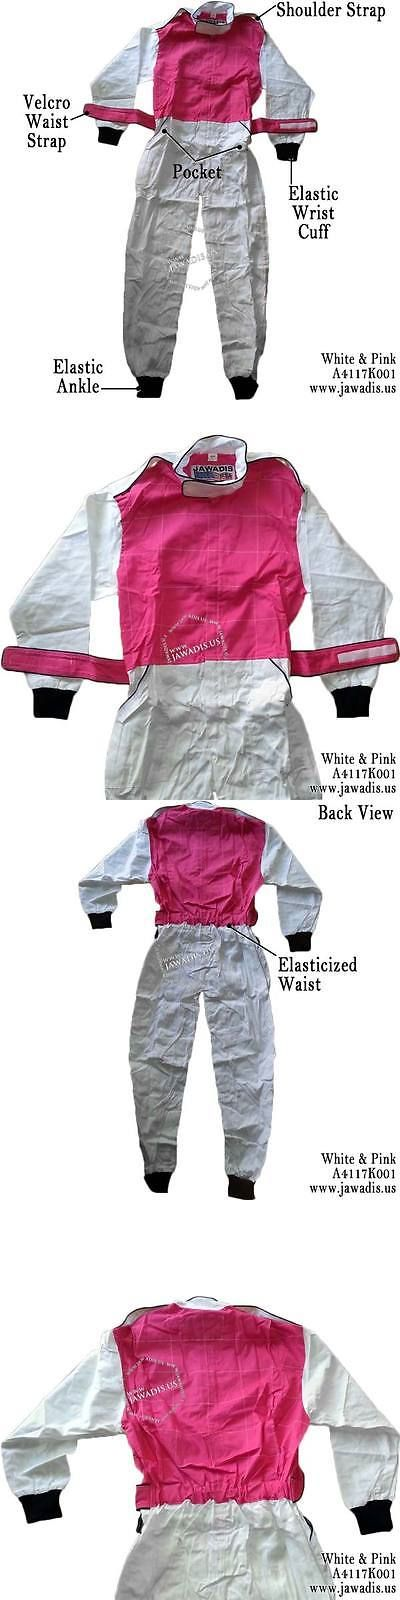 Clothing and Protective Gear 159029: Adult White And Pink Racing Overalls, Go Kart Clothing For Sale, Go Suits Racewear -> BUY IT NOW ONLY: $59.95 on eBay!